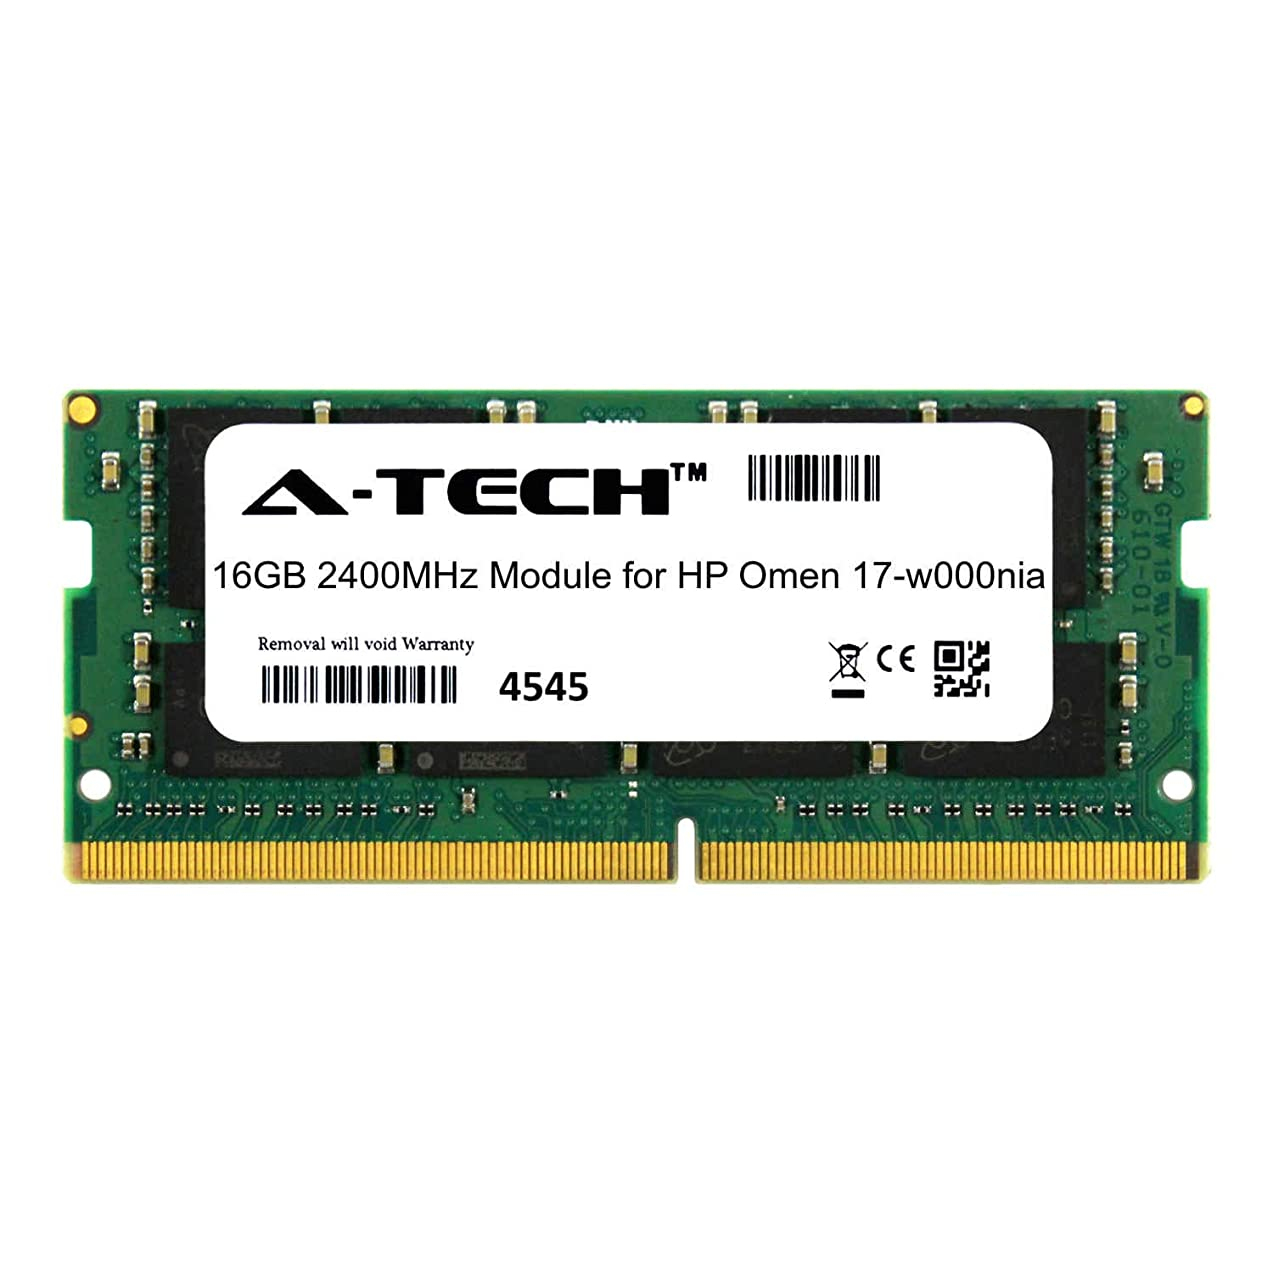 A-Tech 16GB Module for HP Omen 17-w000nia Laptop & Notebook Compatible DDR4 2400Mhz Memory Ram (ATMS281356A25831X1)